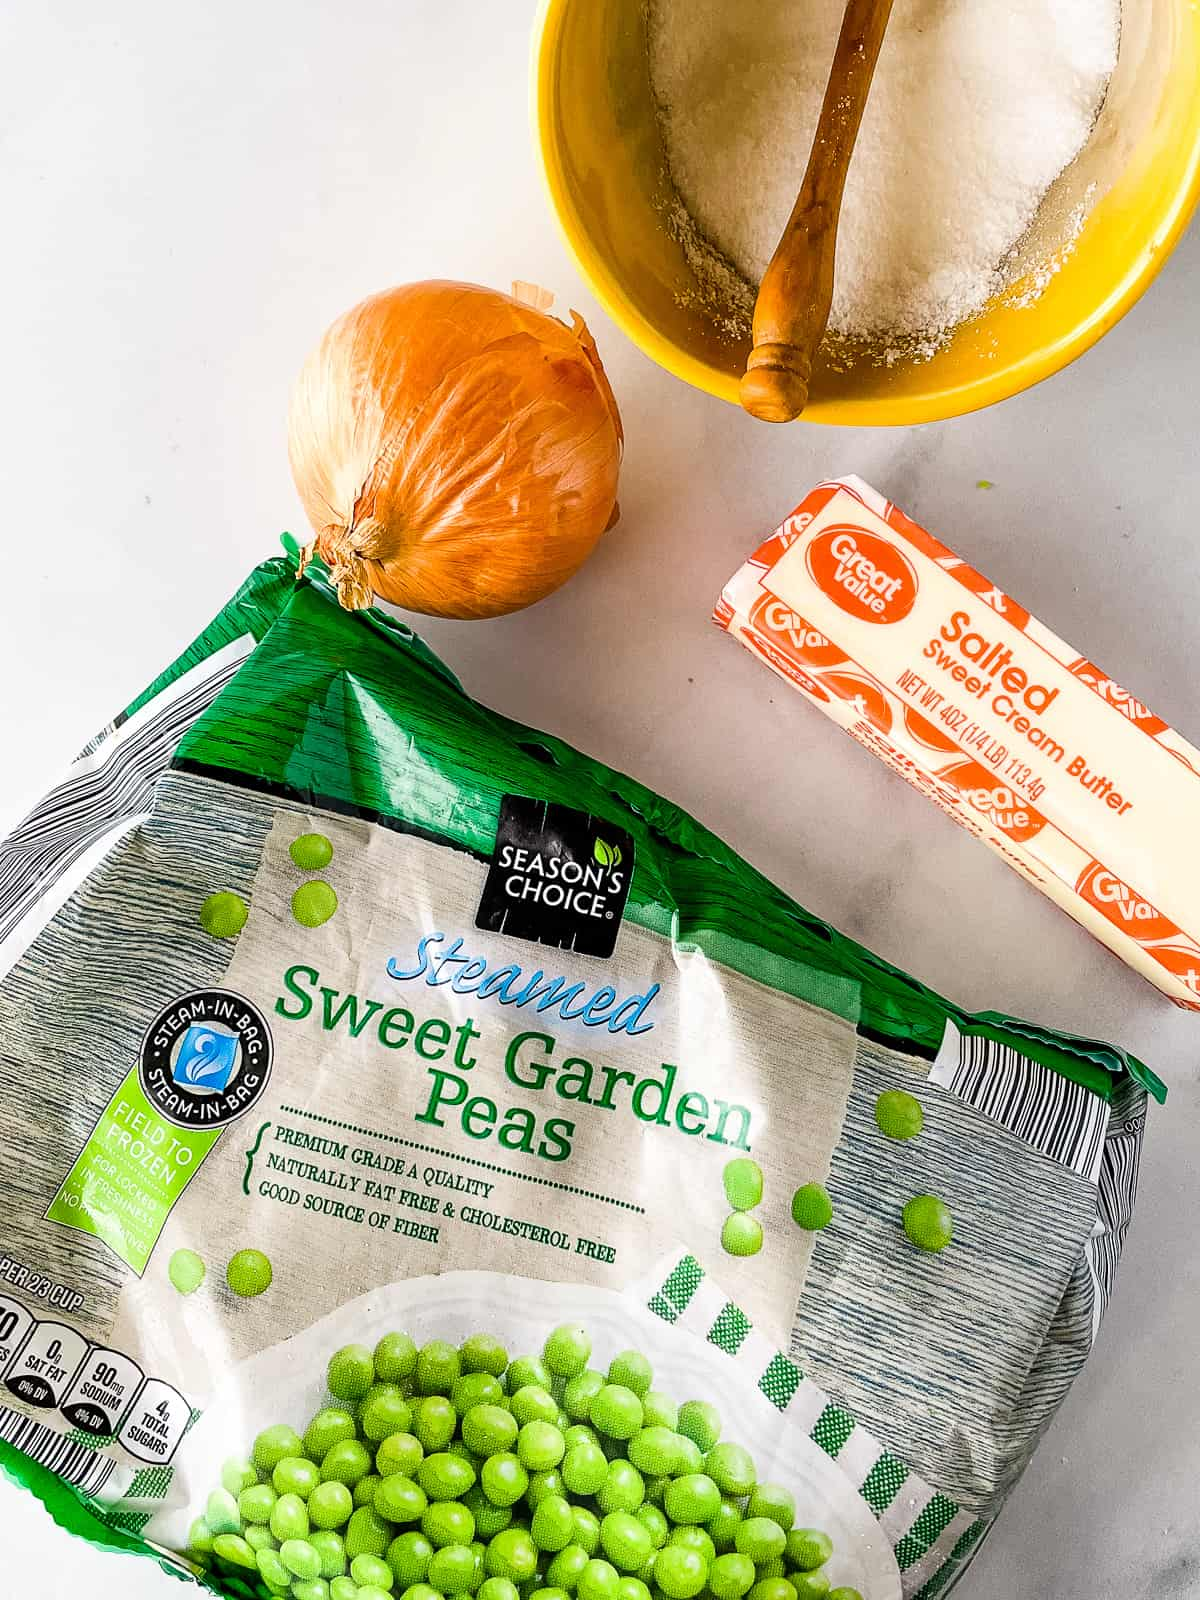 Bag of frozen peas, stick of butter, small onion, and container of salt.